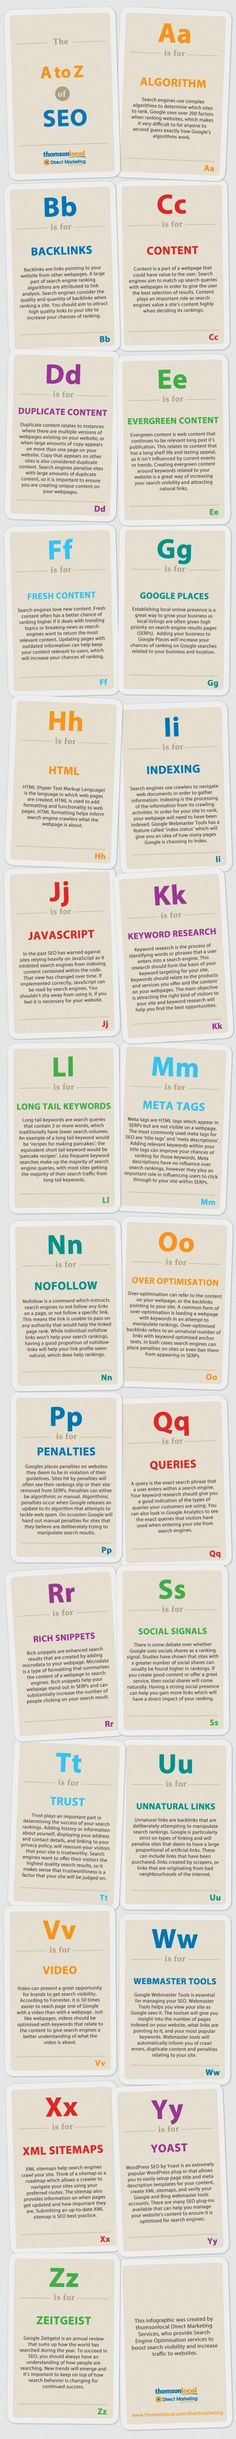 The A to Z of SEO #infografia #infographic #seo. http://www.conectarnos.com/